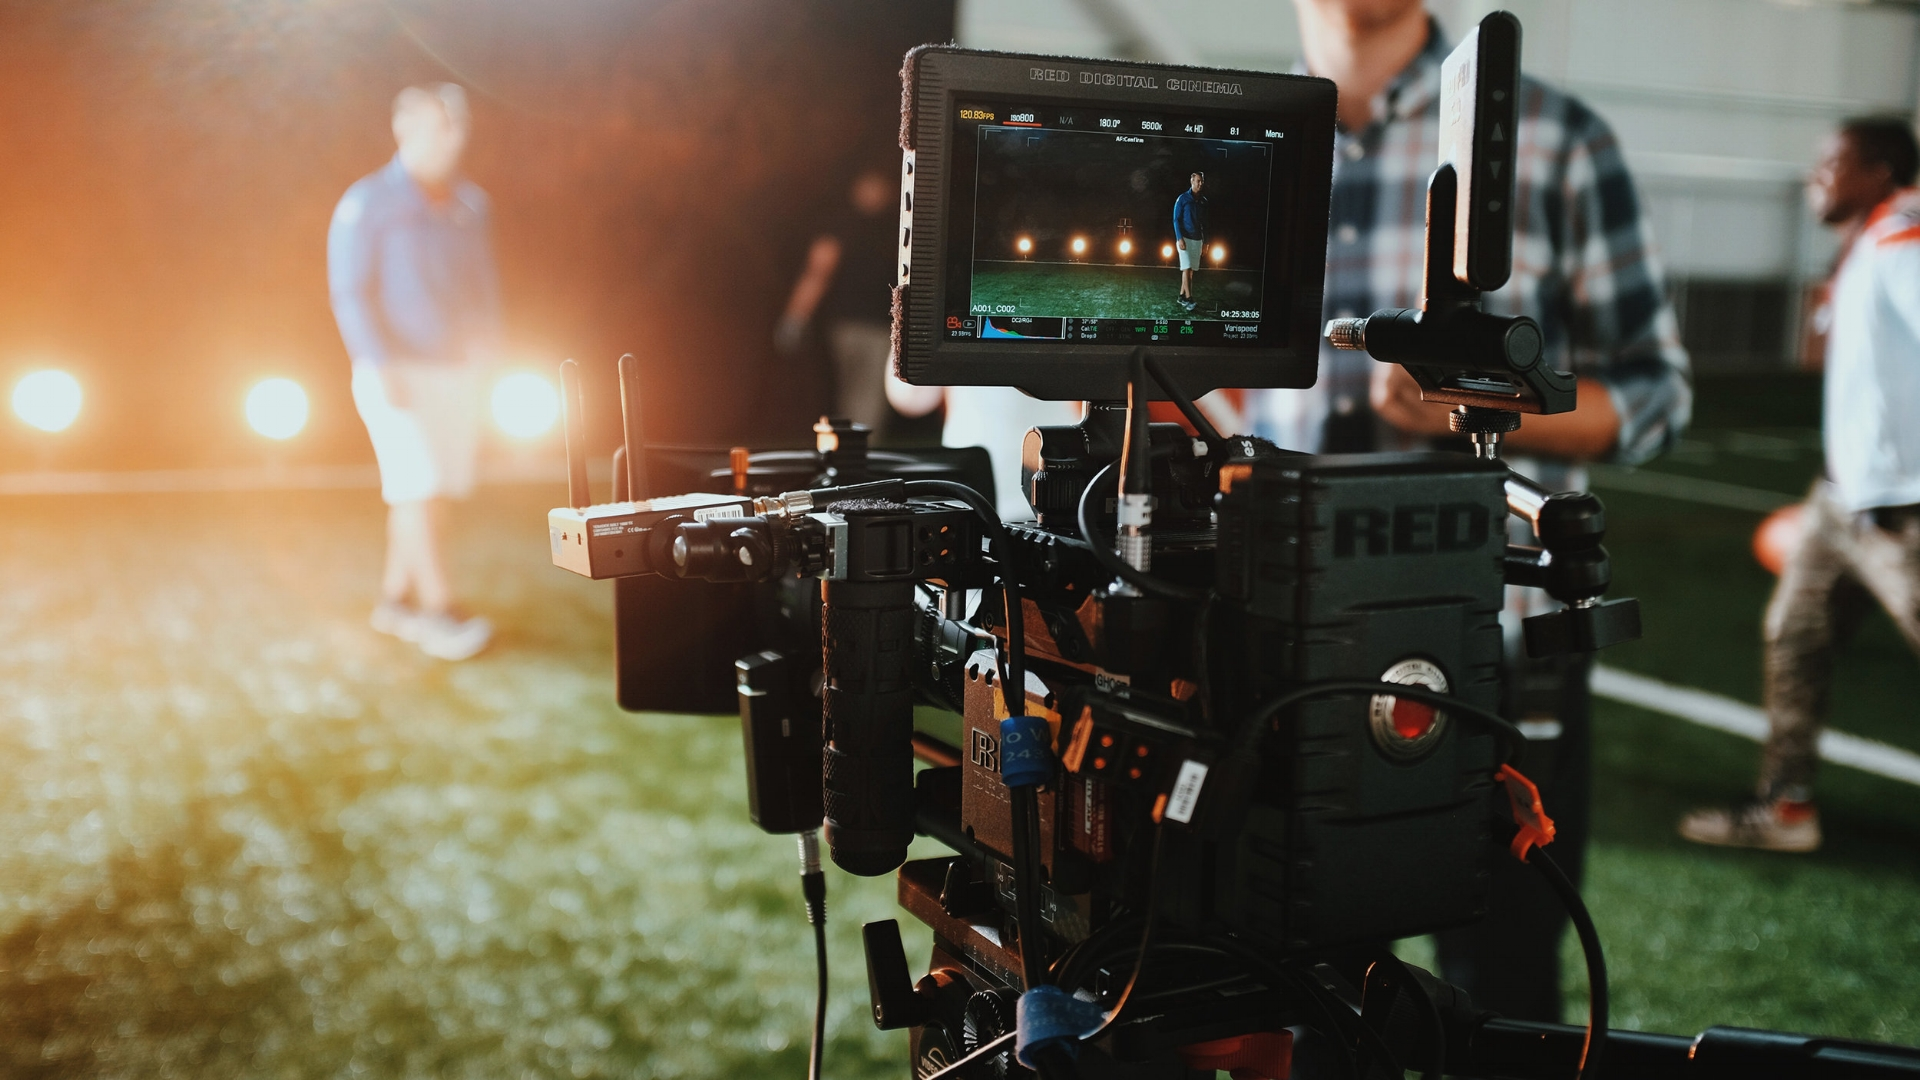 new-jersey-video-production-hologram-visuals-new-york-commercials-ad-branded-content-pvh-red-weapon-4k-van-heusen.jpg